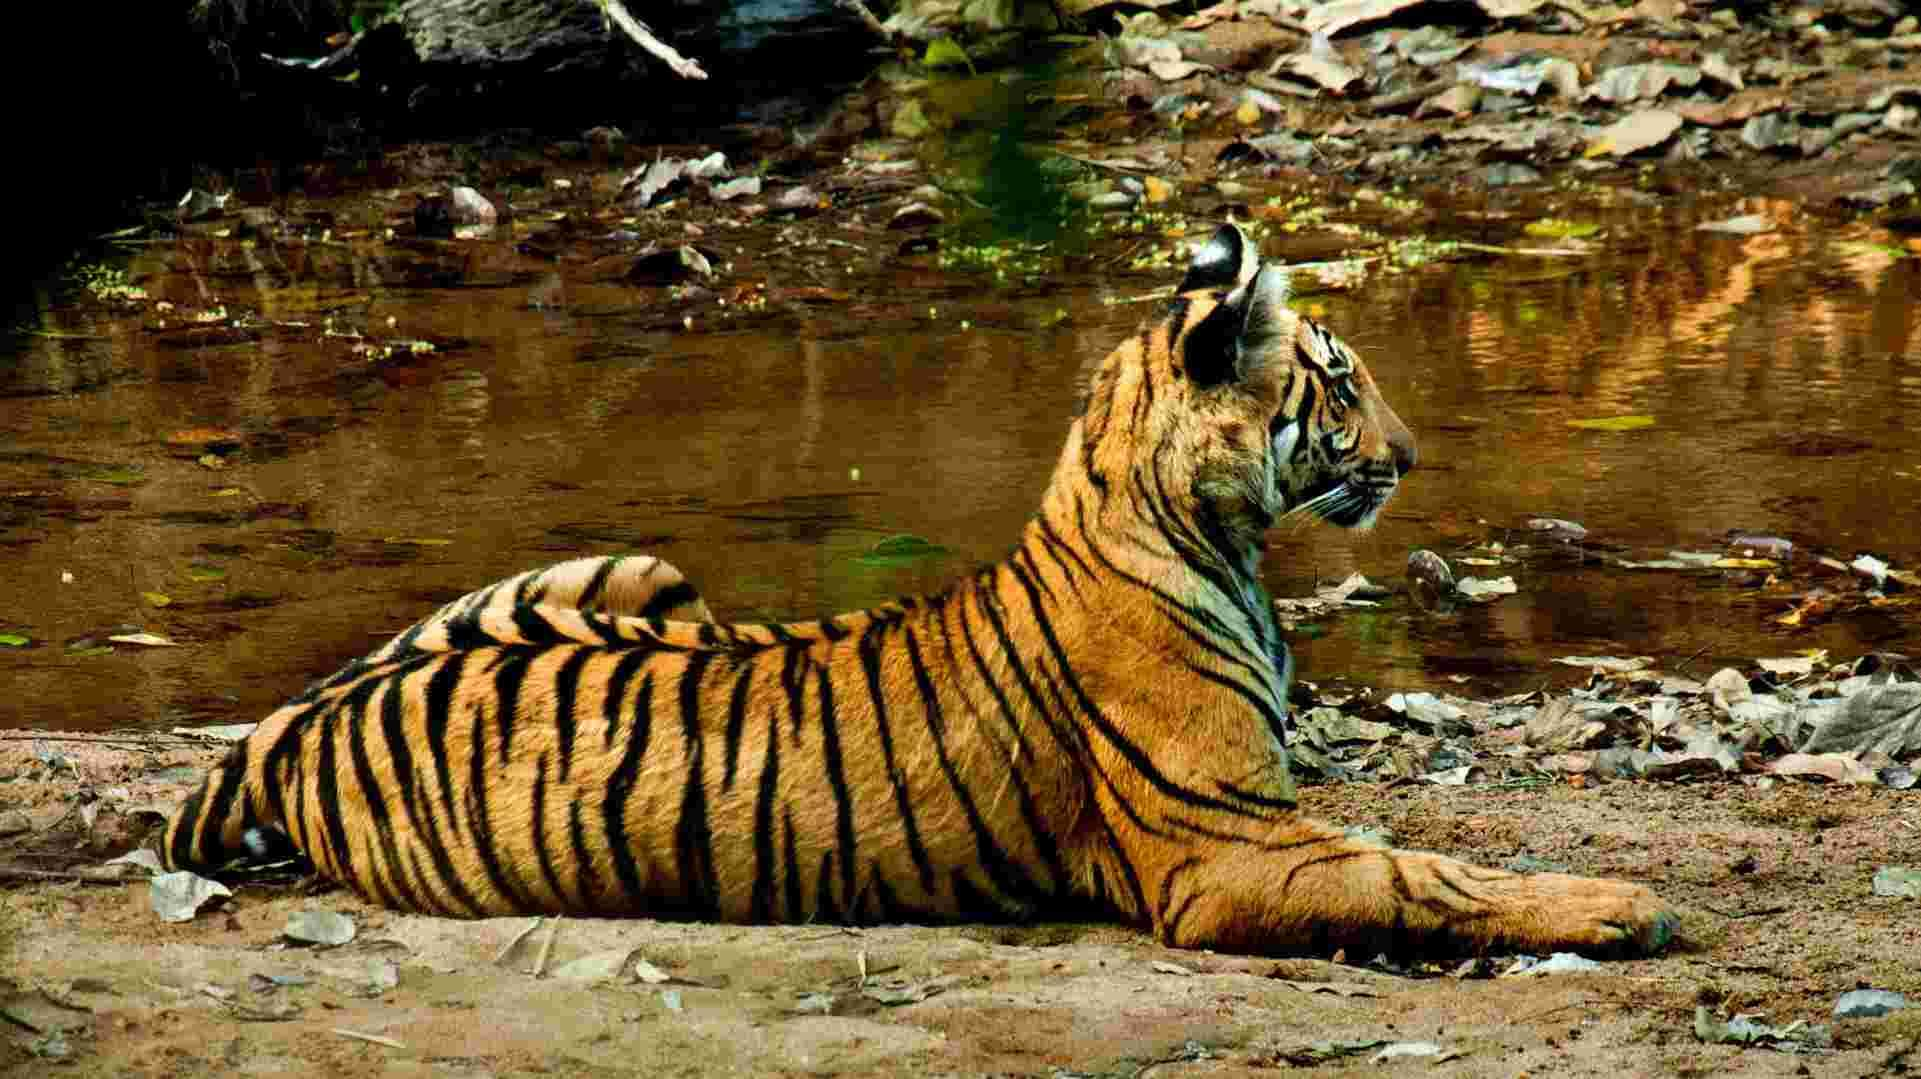 Tiger deaths in 2018 lower than previous years, but habitat loss, poaching still pose threat